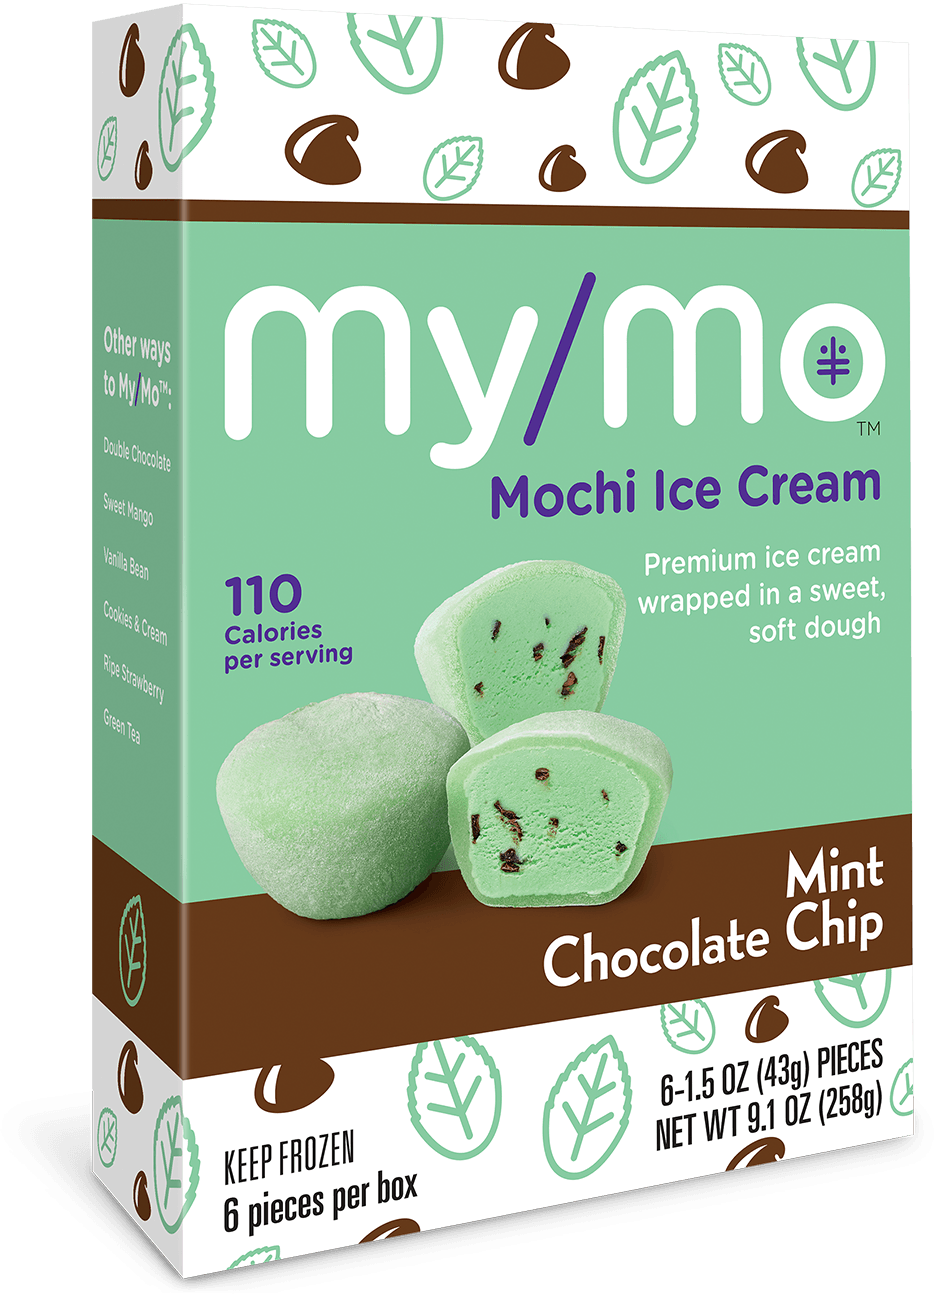 041917-MyMo-3D-mint-chip-1-1.png